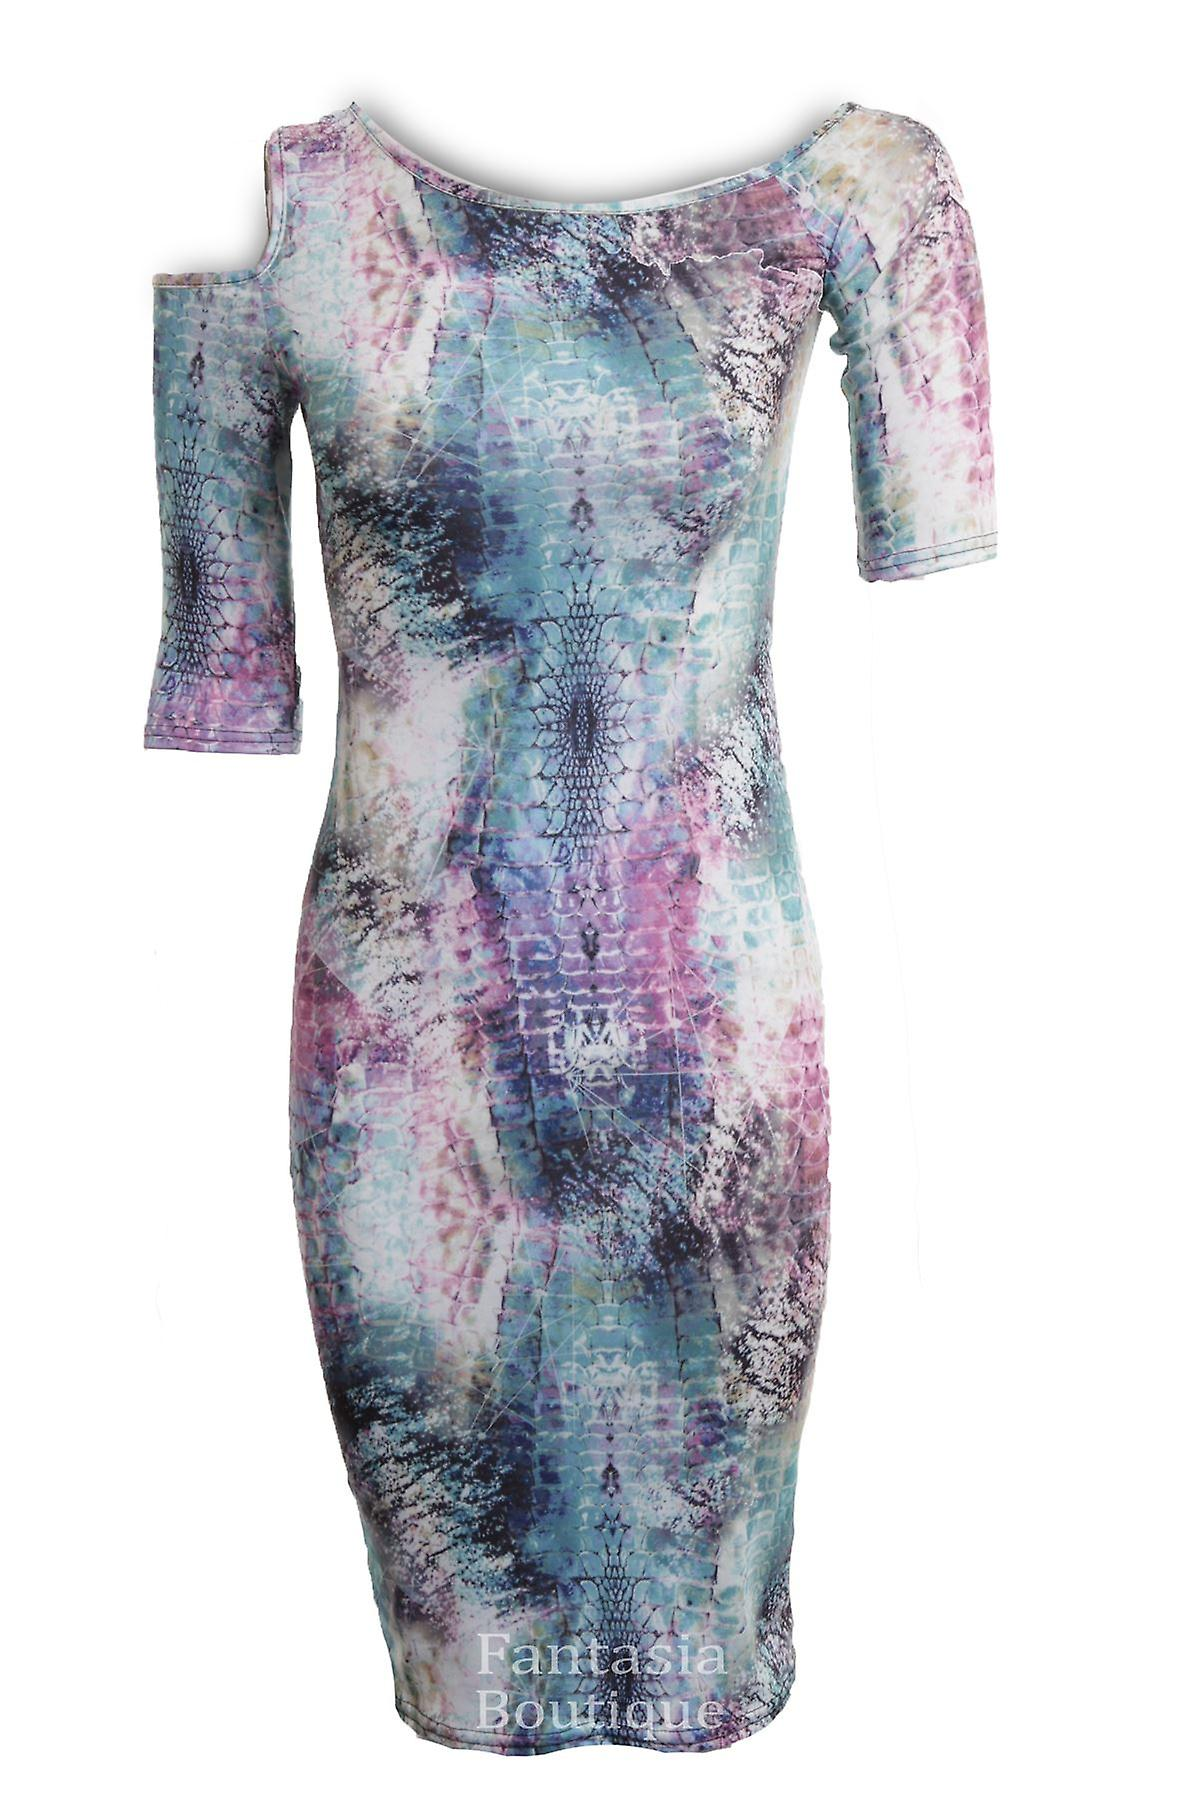 New Ladies Short Sleeve Cutout Snake Spider Graffiti Print Women's Bodycon Dress